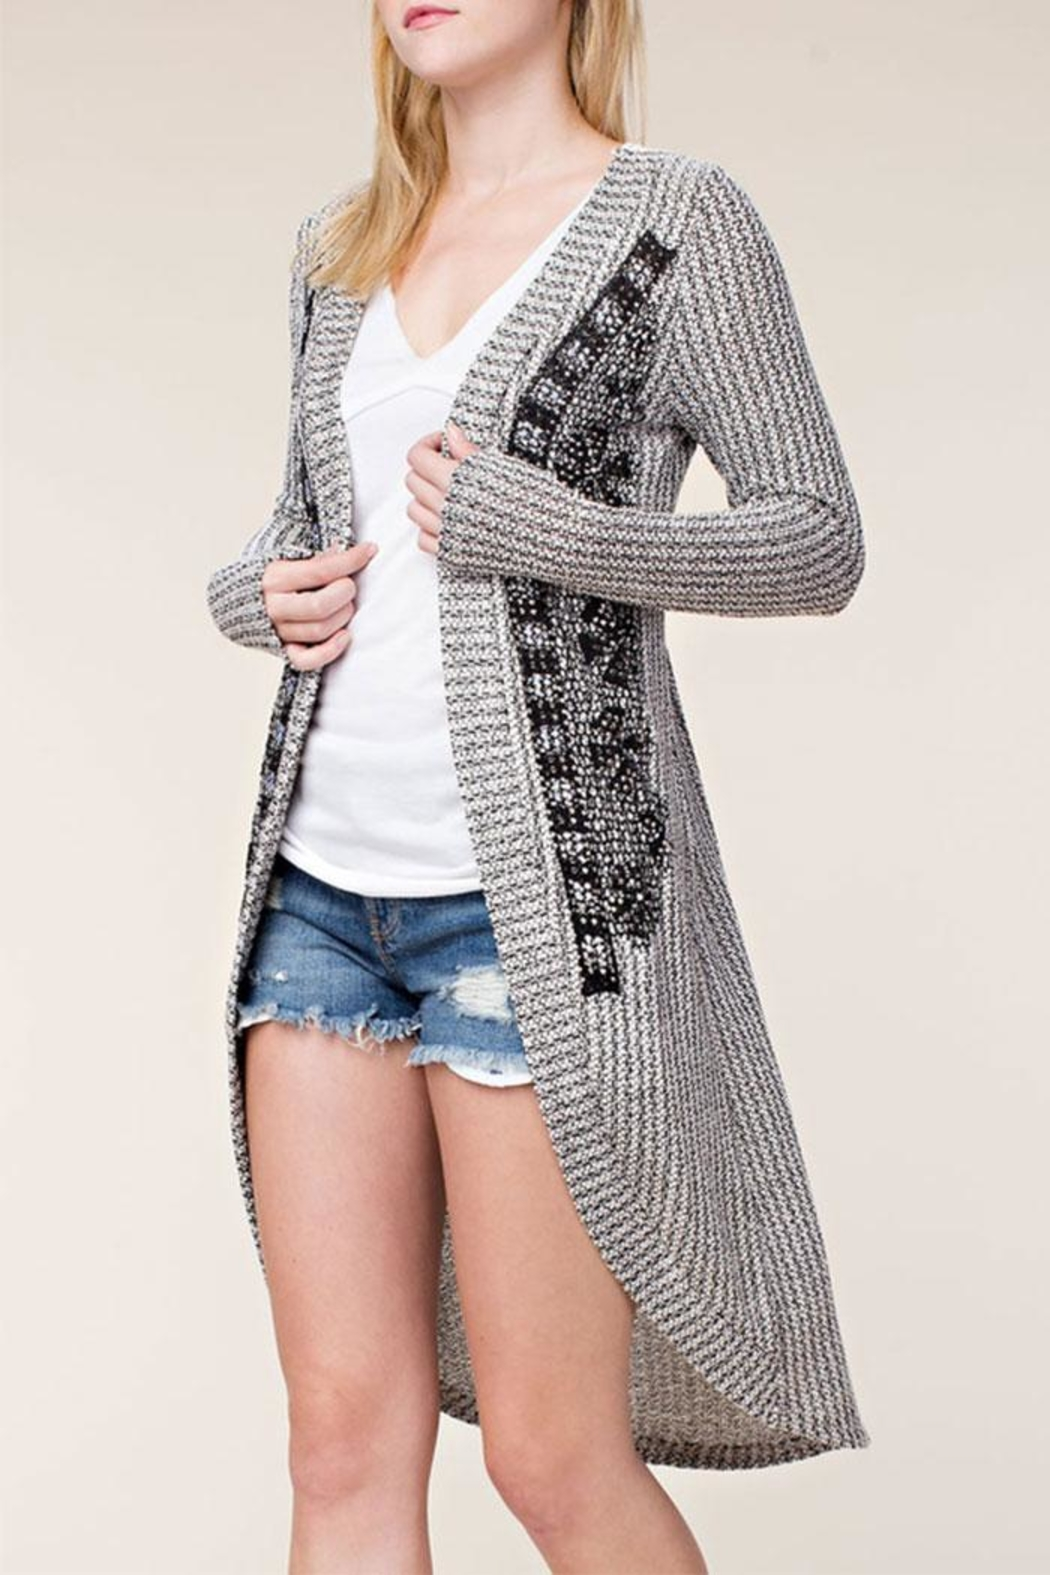 Vocal Apparel Stone Detail Cardigan - Main Image